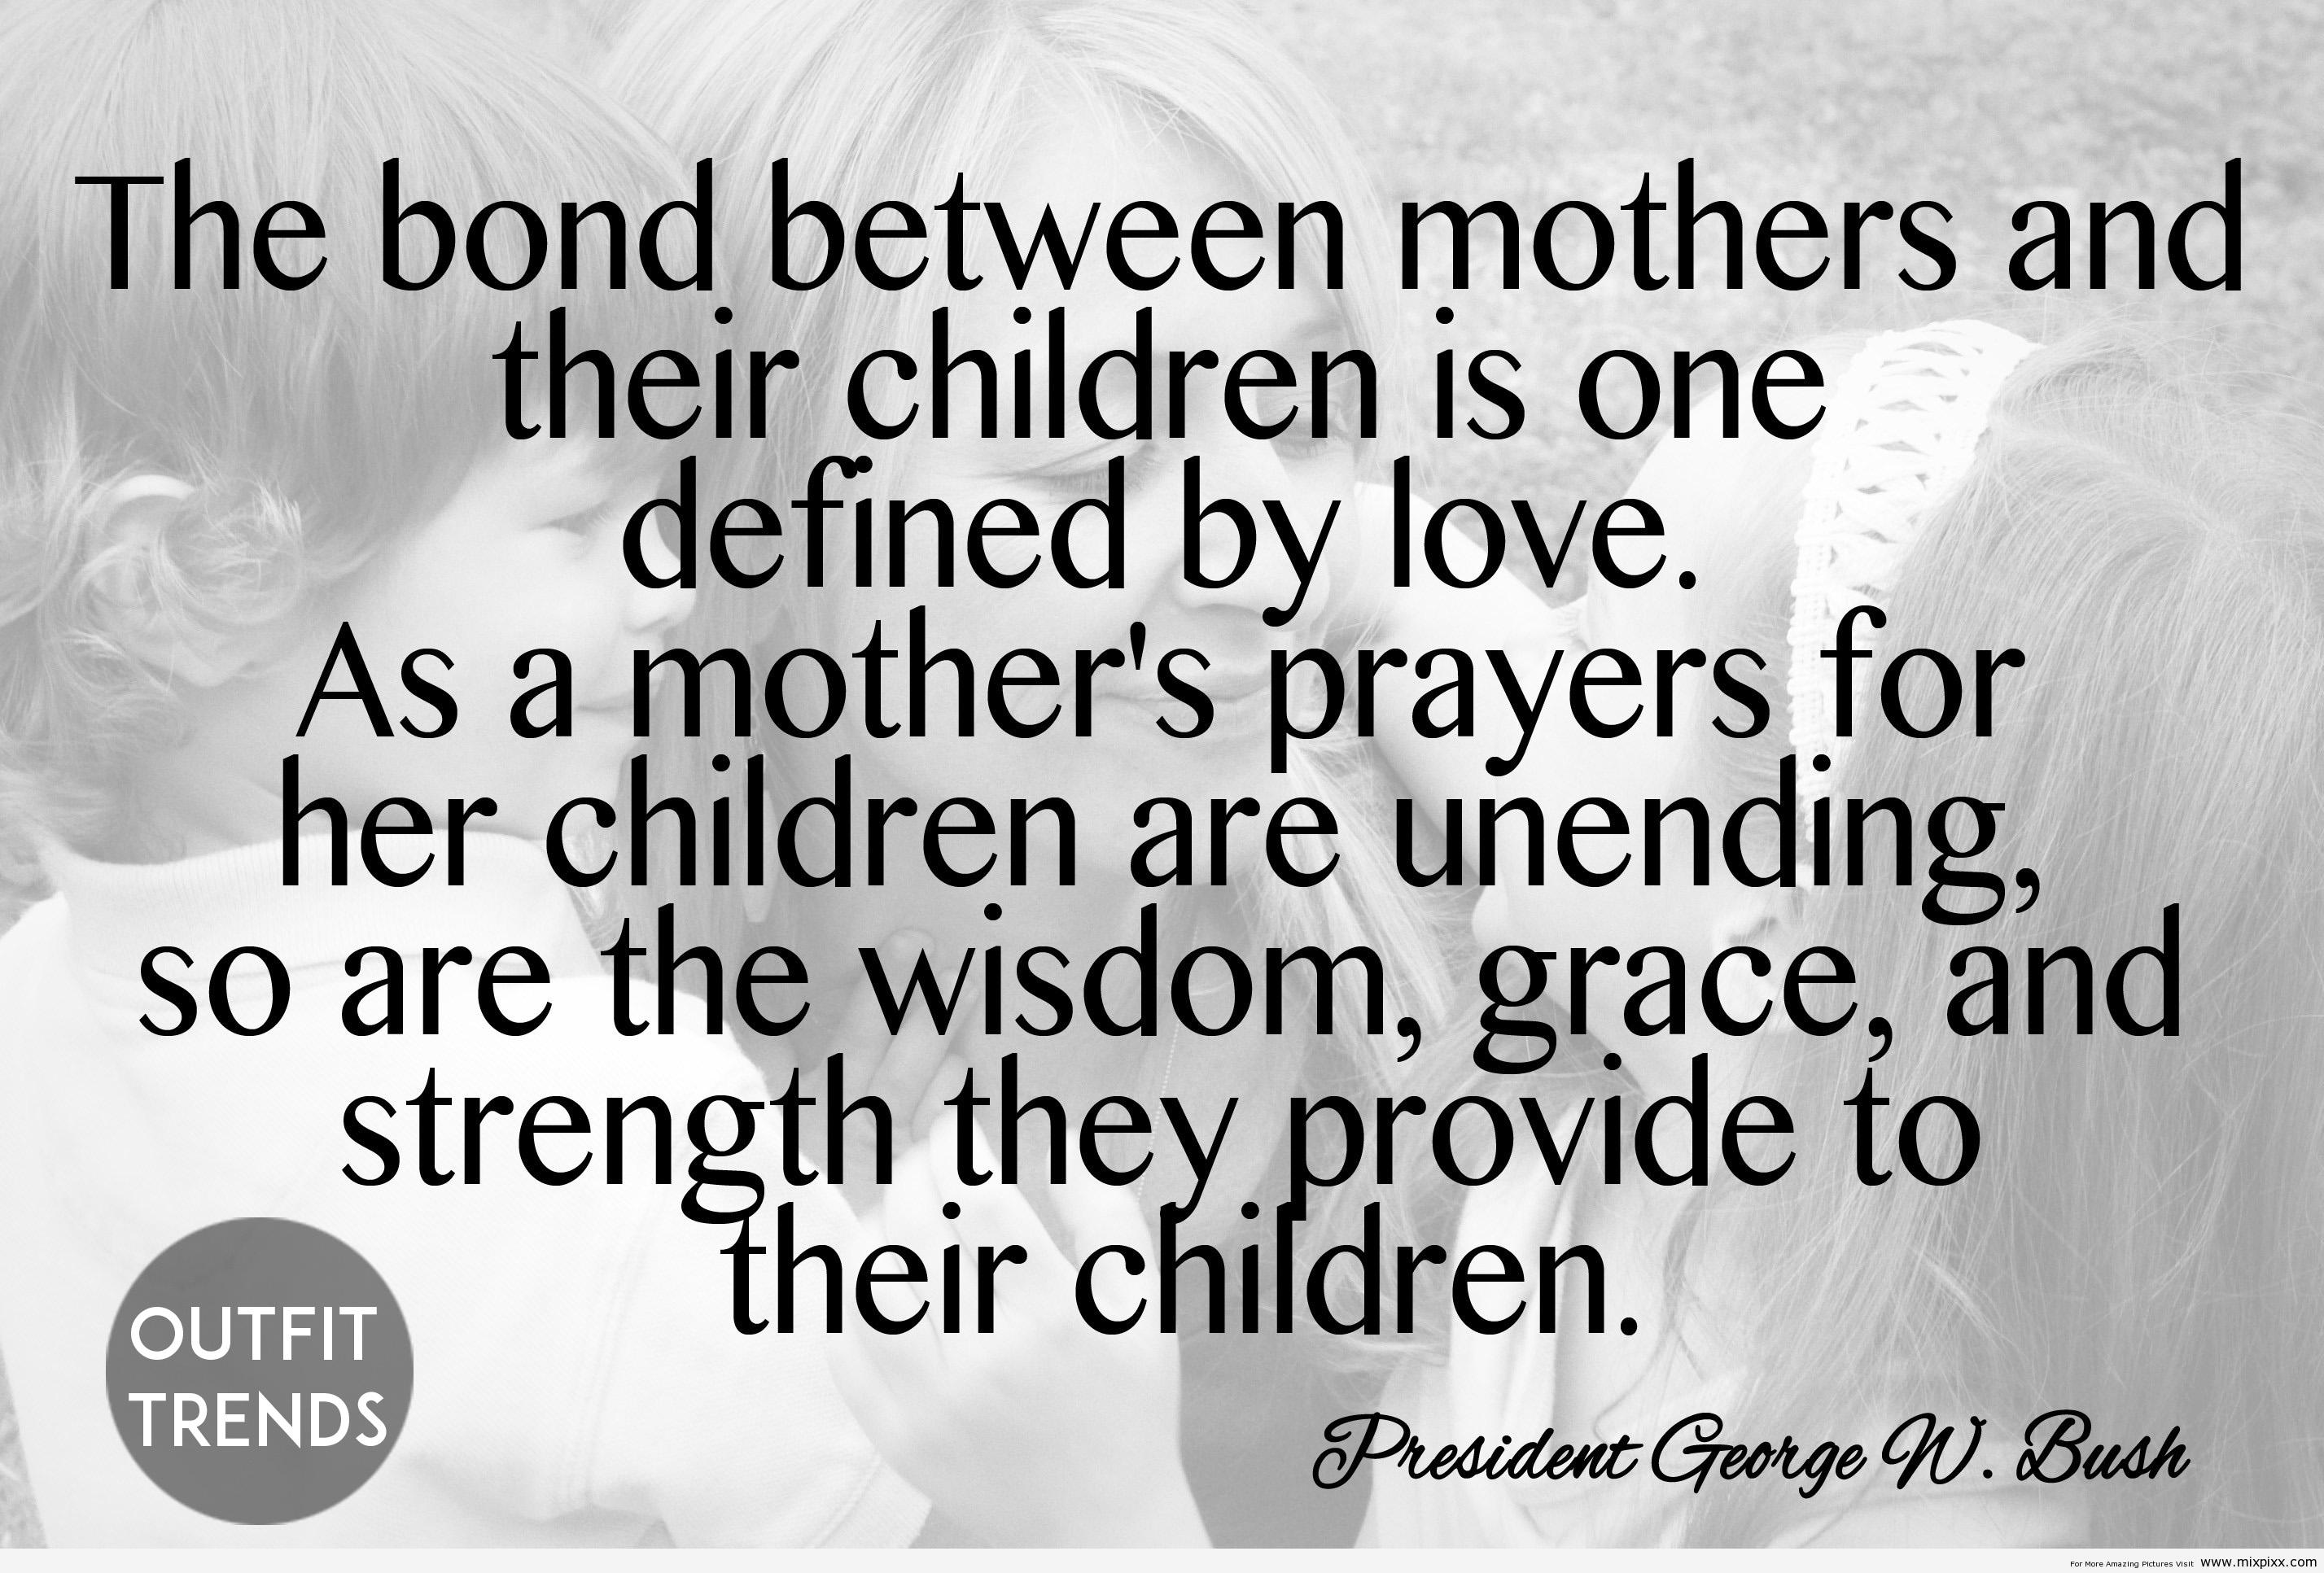 Bond Quotes 50 Quotes About Mothersislamic And General Quotes On Mothers